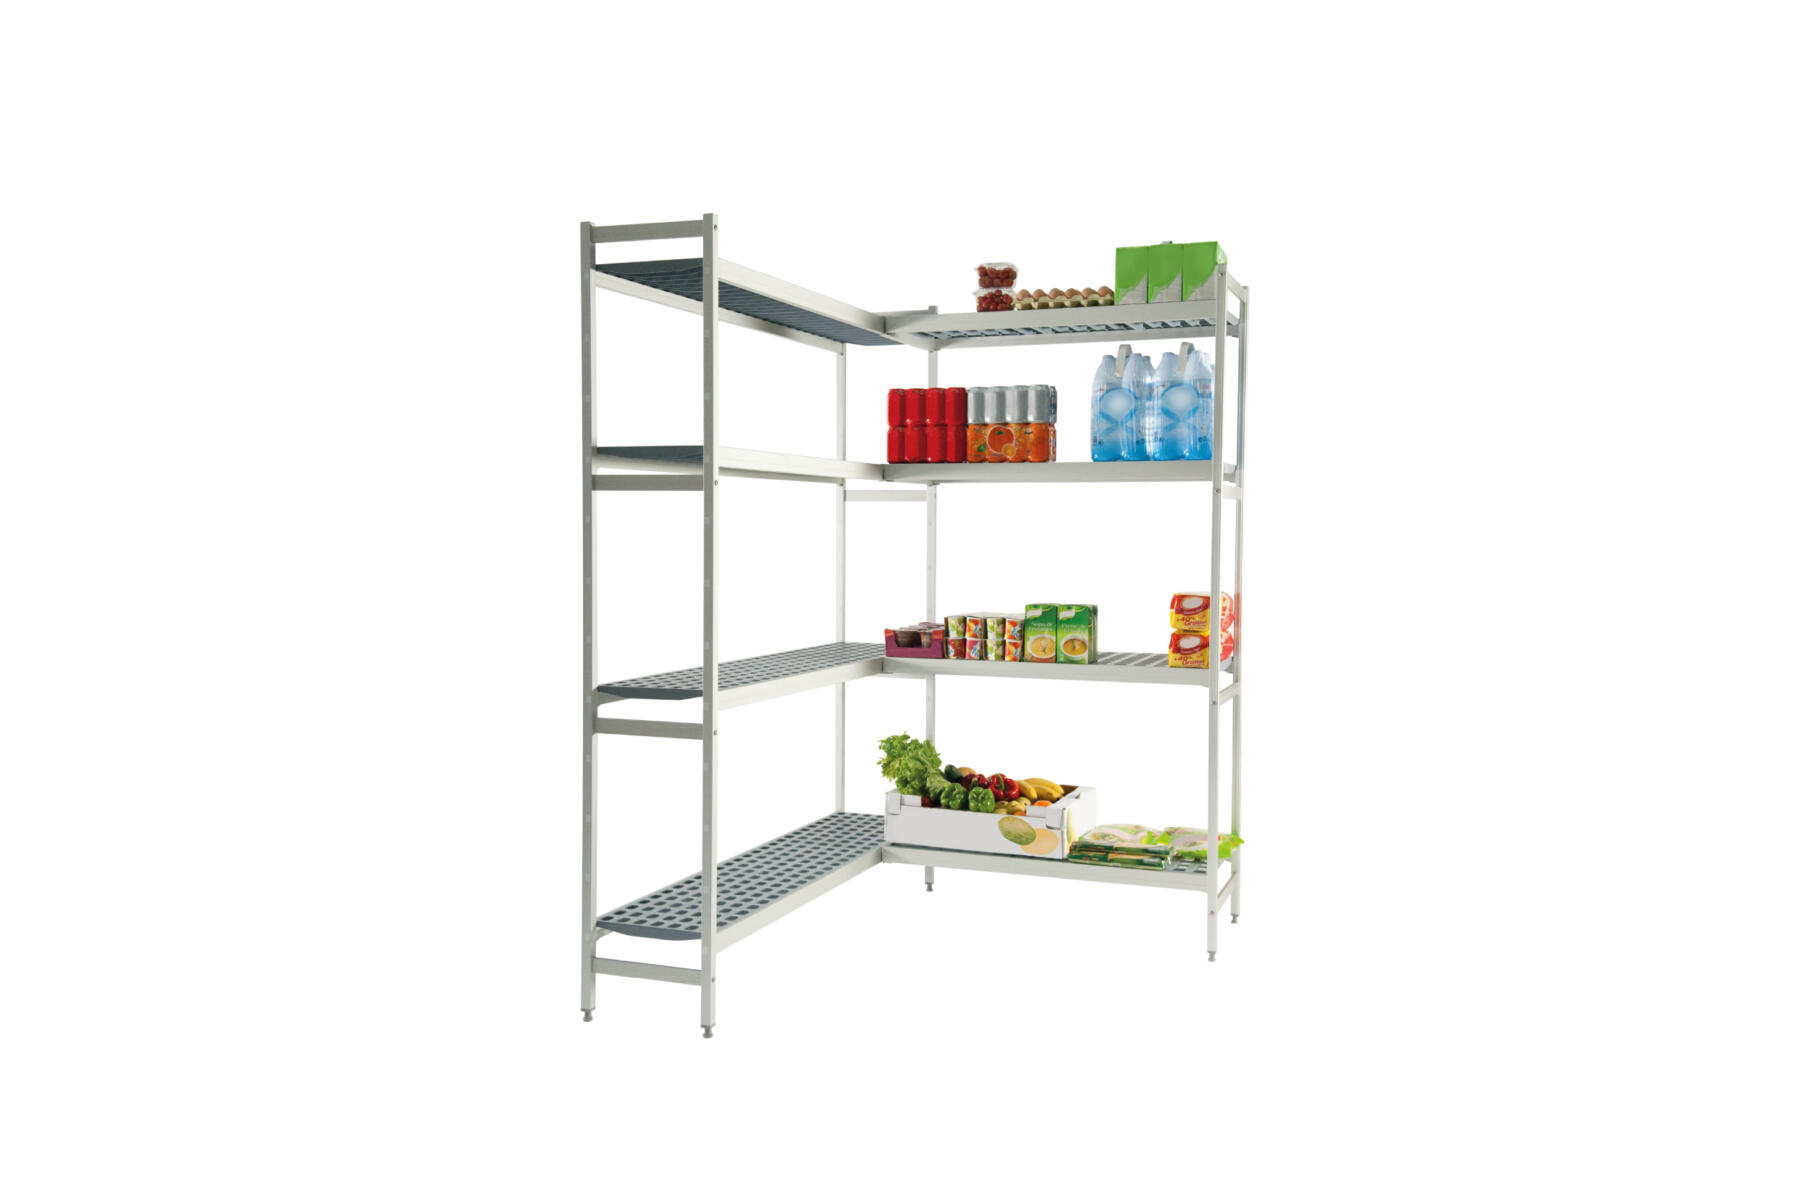 Dagard cold room: shelving and gantries